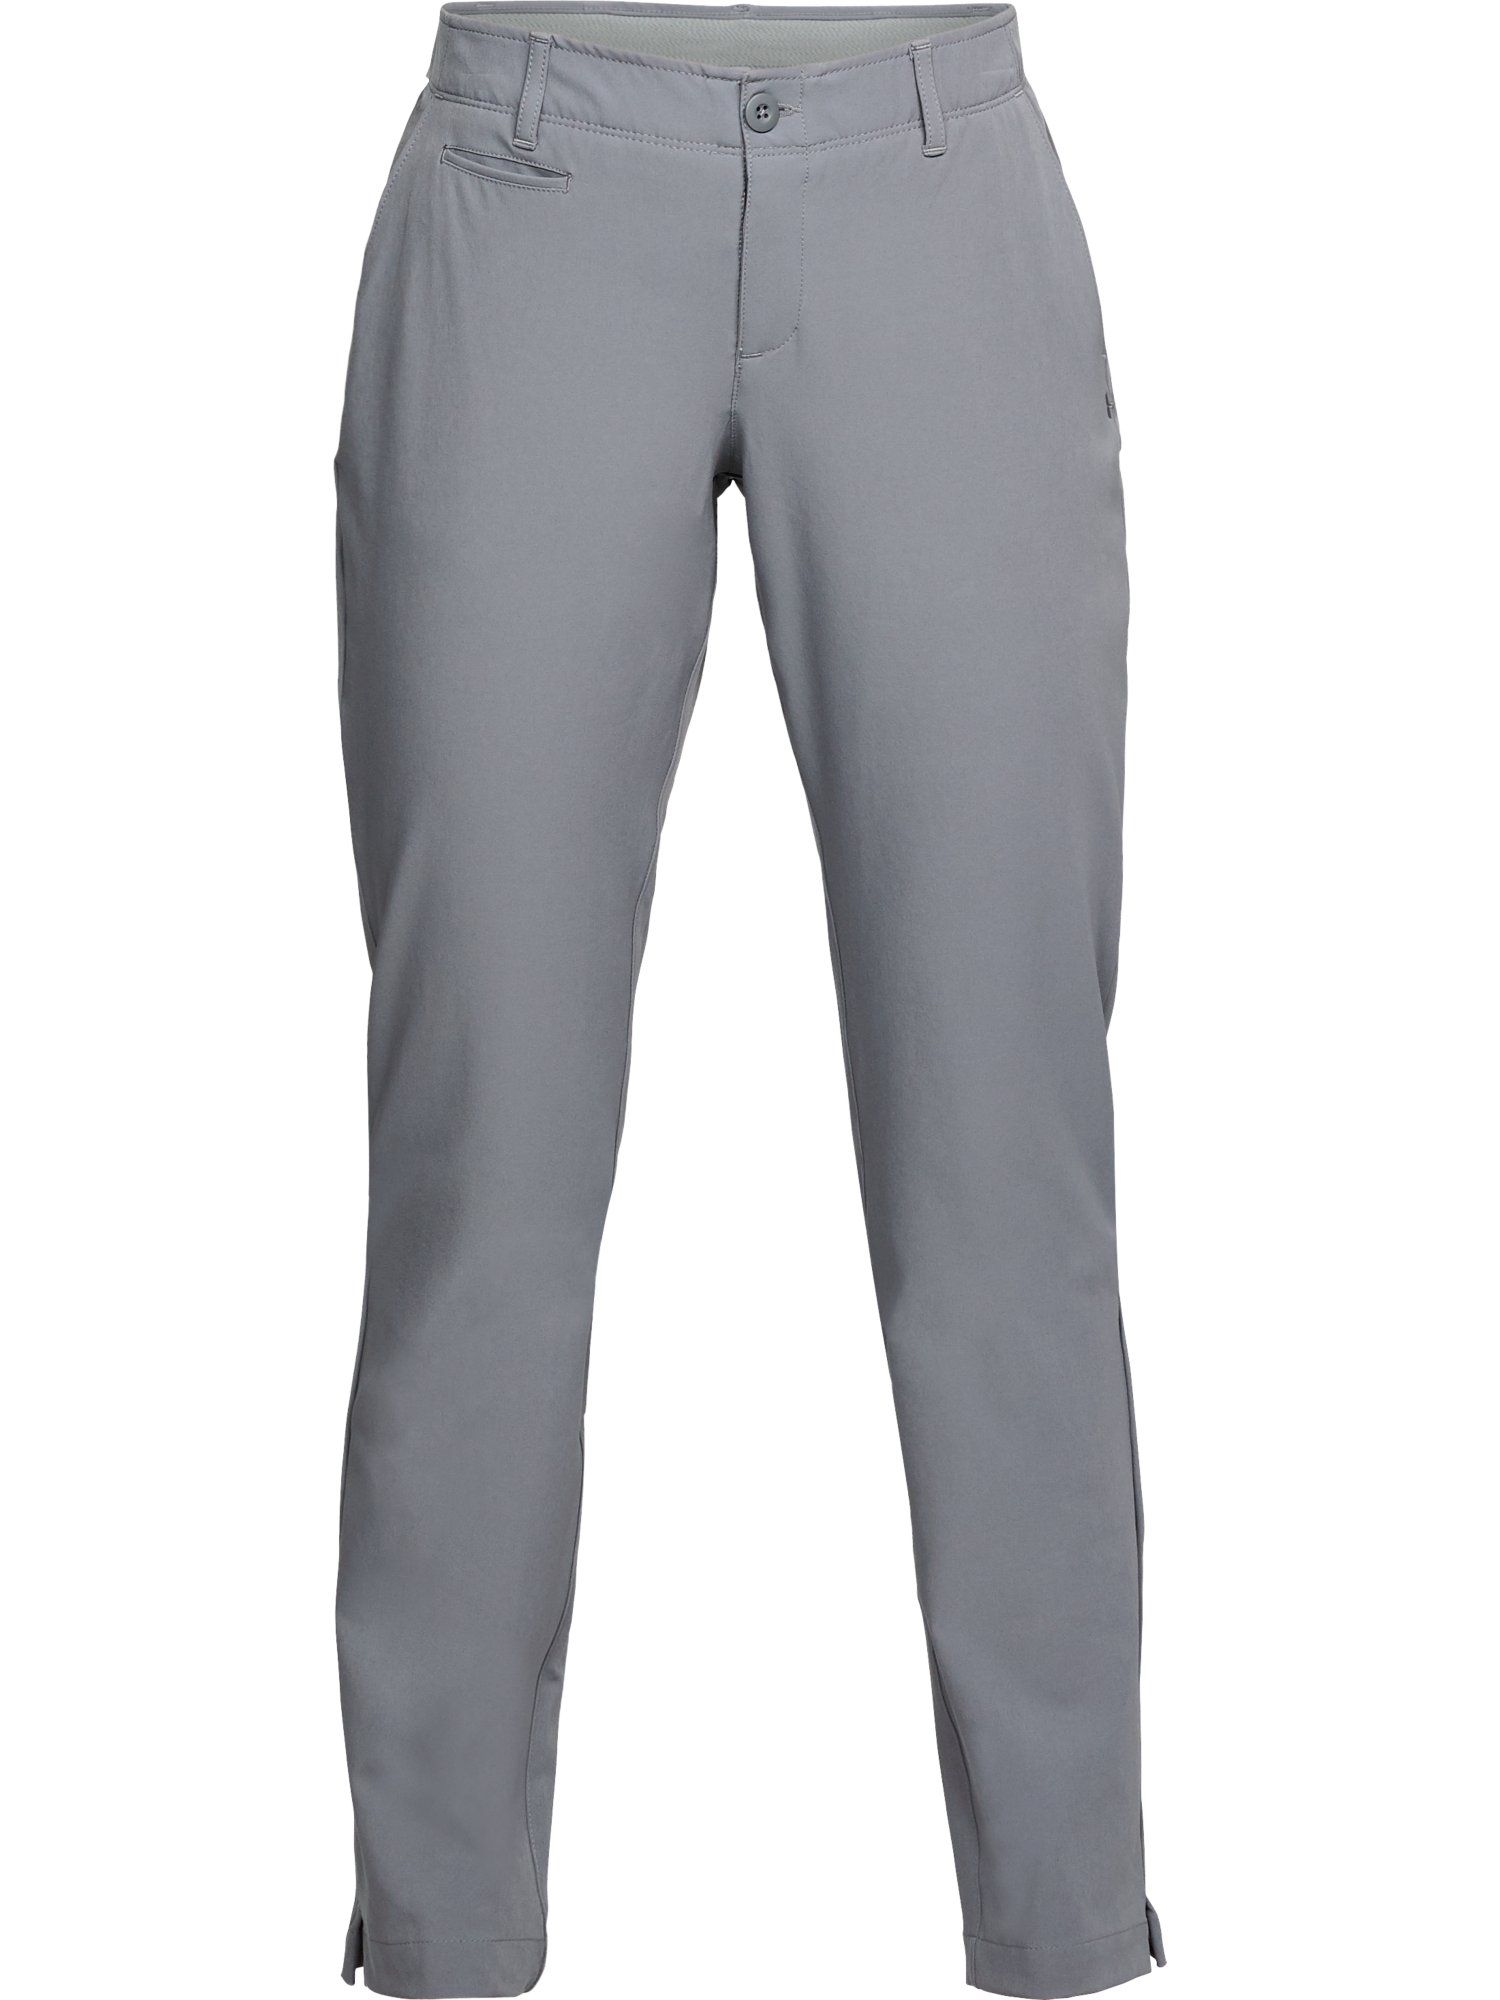 Under Armour Links Trousers, Grey